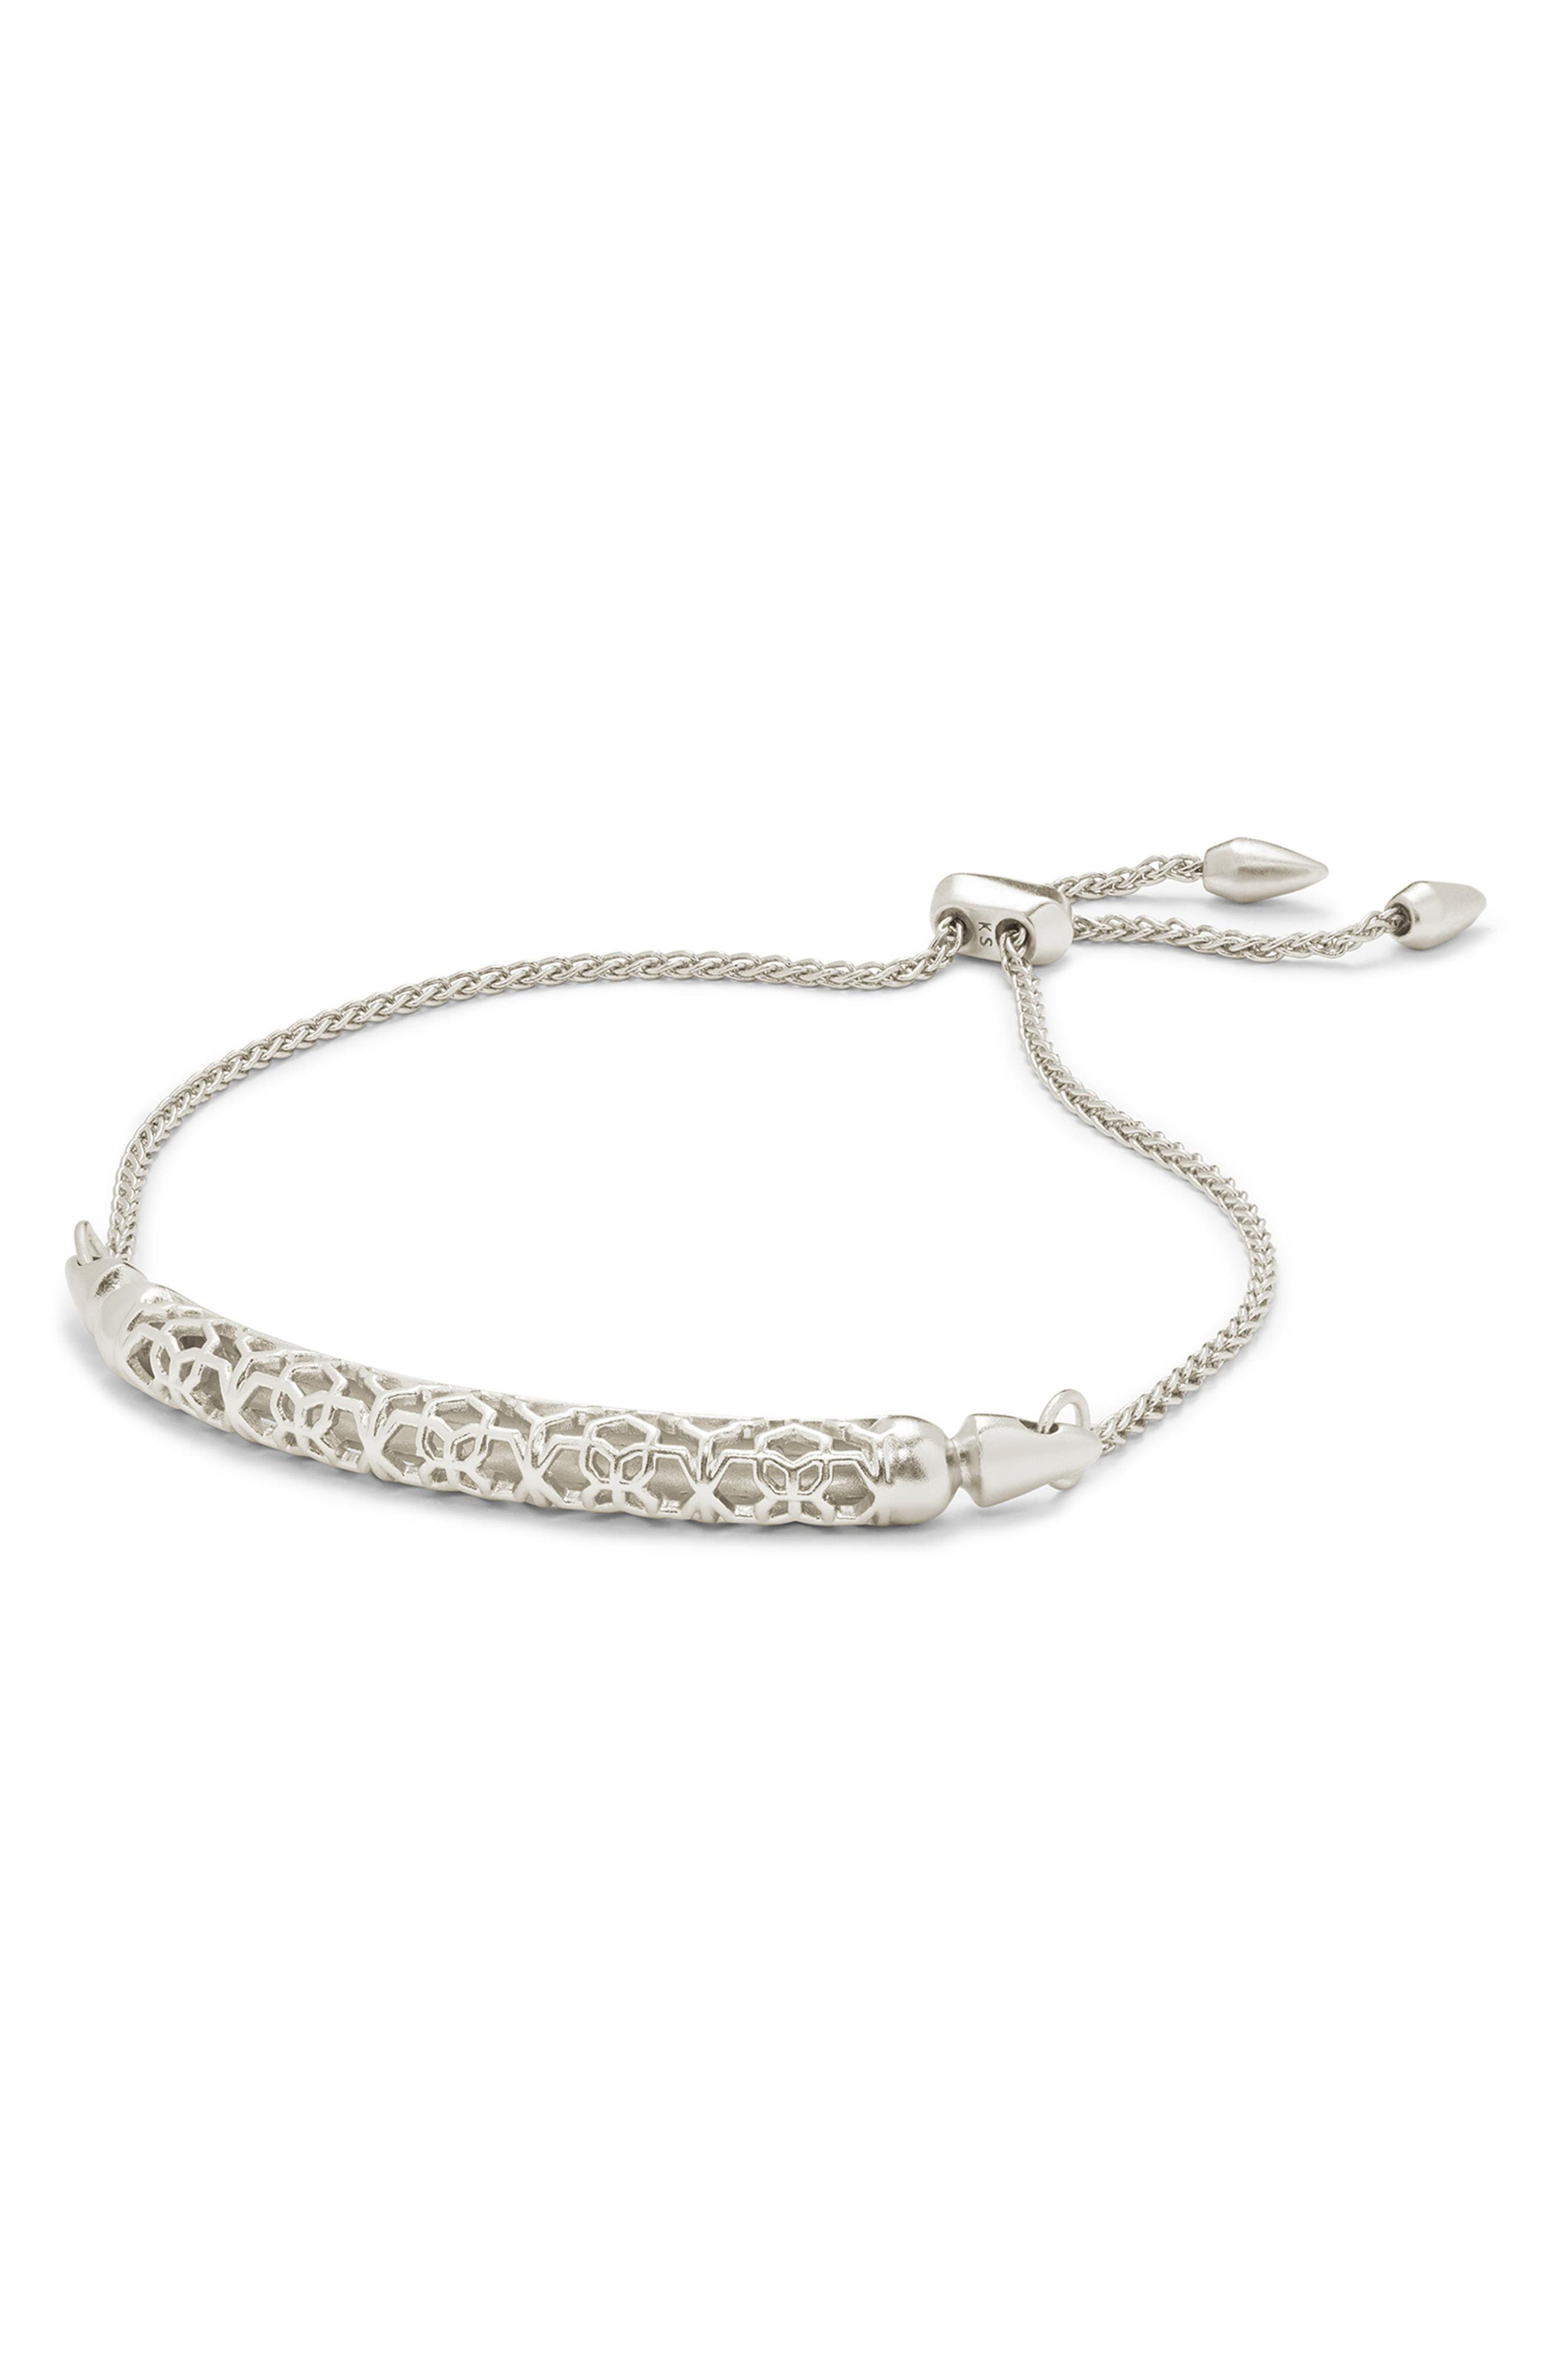 Gilly Adjustable Bracelet,                             Alternate thumbnail 2, color,                             SILVER FILIGREE